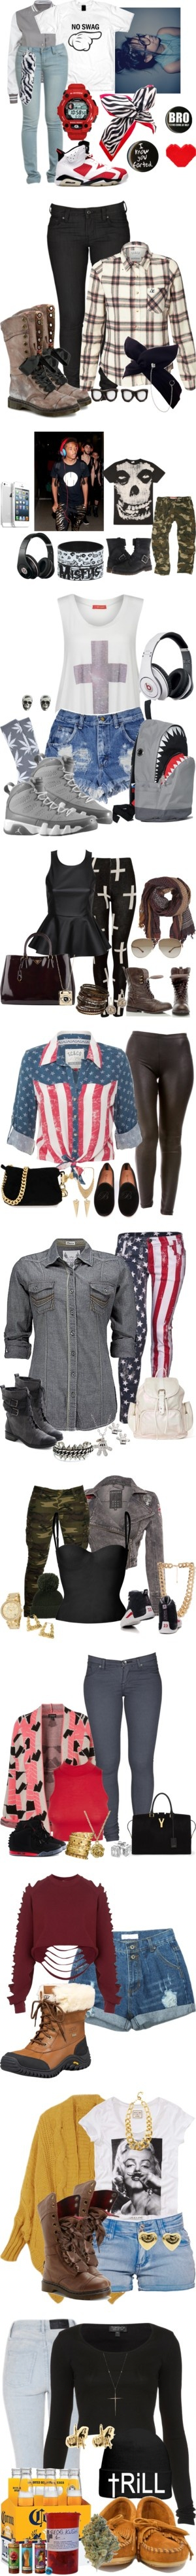 """Trill Year (2013)"" by mrkr-lawson ❤ liked on Polyvore"